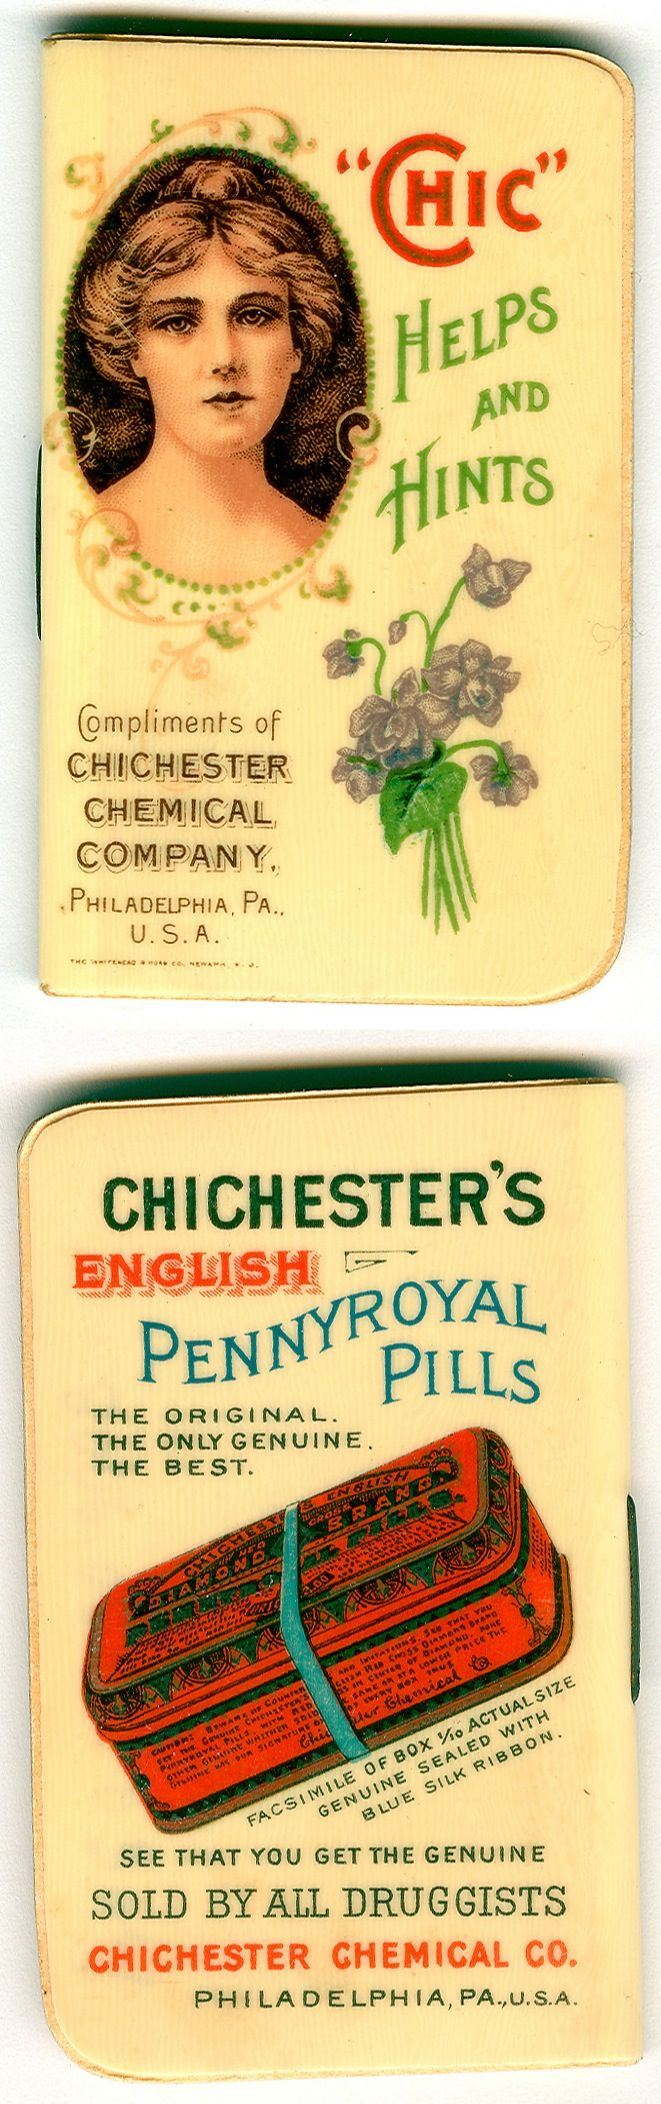 A promotional booklet with a celluloid cover, this advertisement for Chichester products contained calendars from 1904-1907 and featured a woman and a box of pennyroyal pills. Marketed as a way to start delayed menstruation, the herb pennyroyal was a known folk medicine used as an abortifacient.